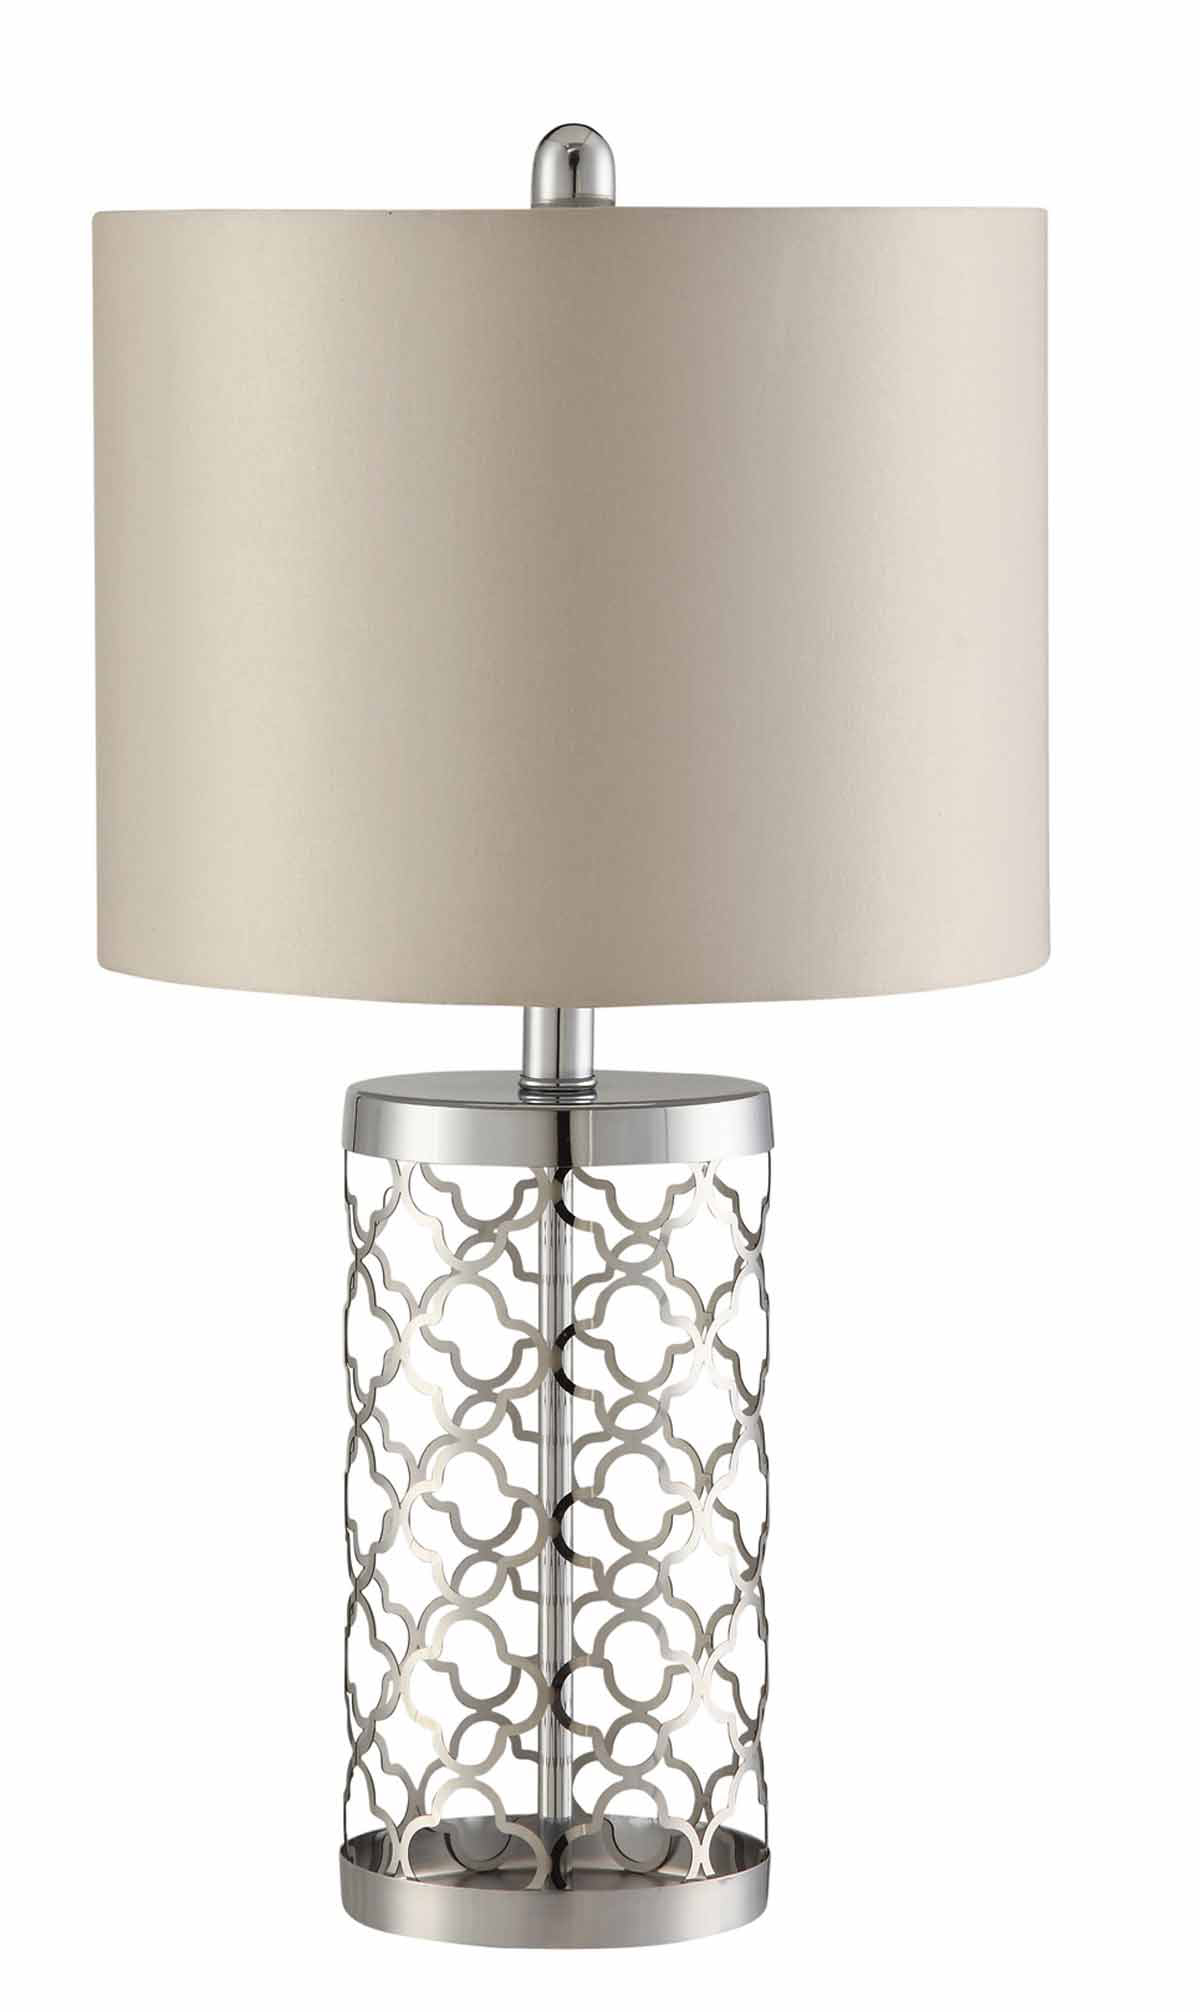 Coaster 901314 Table Lamp - Light Gold